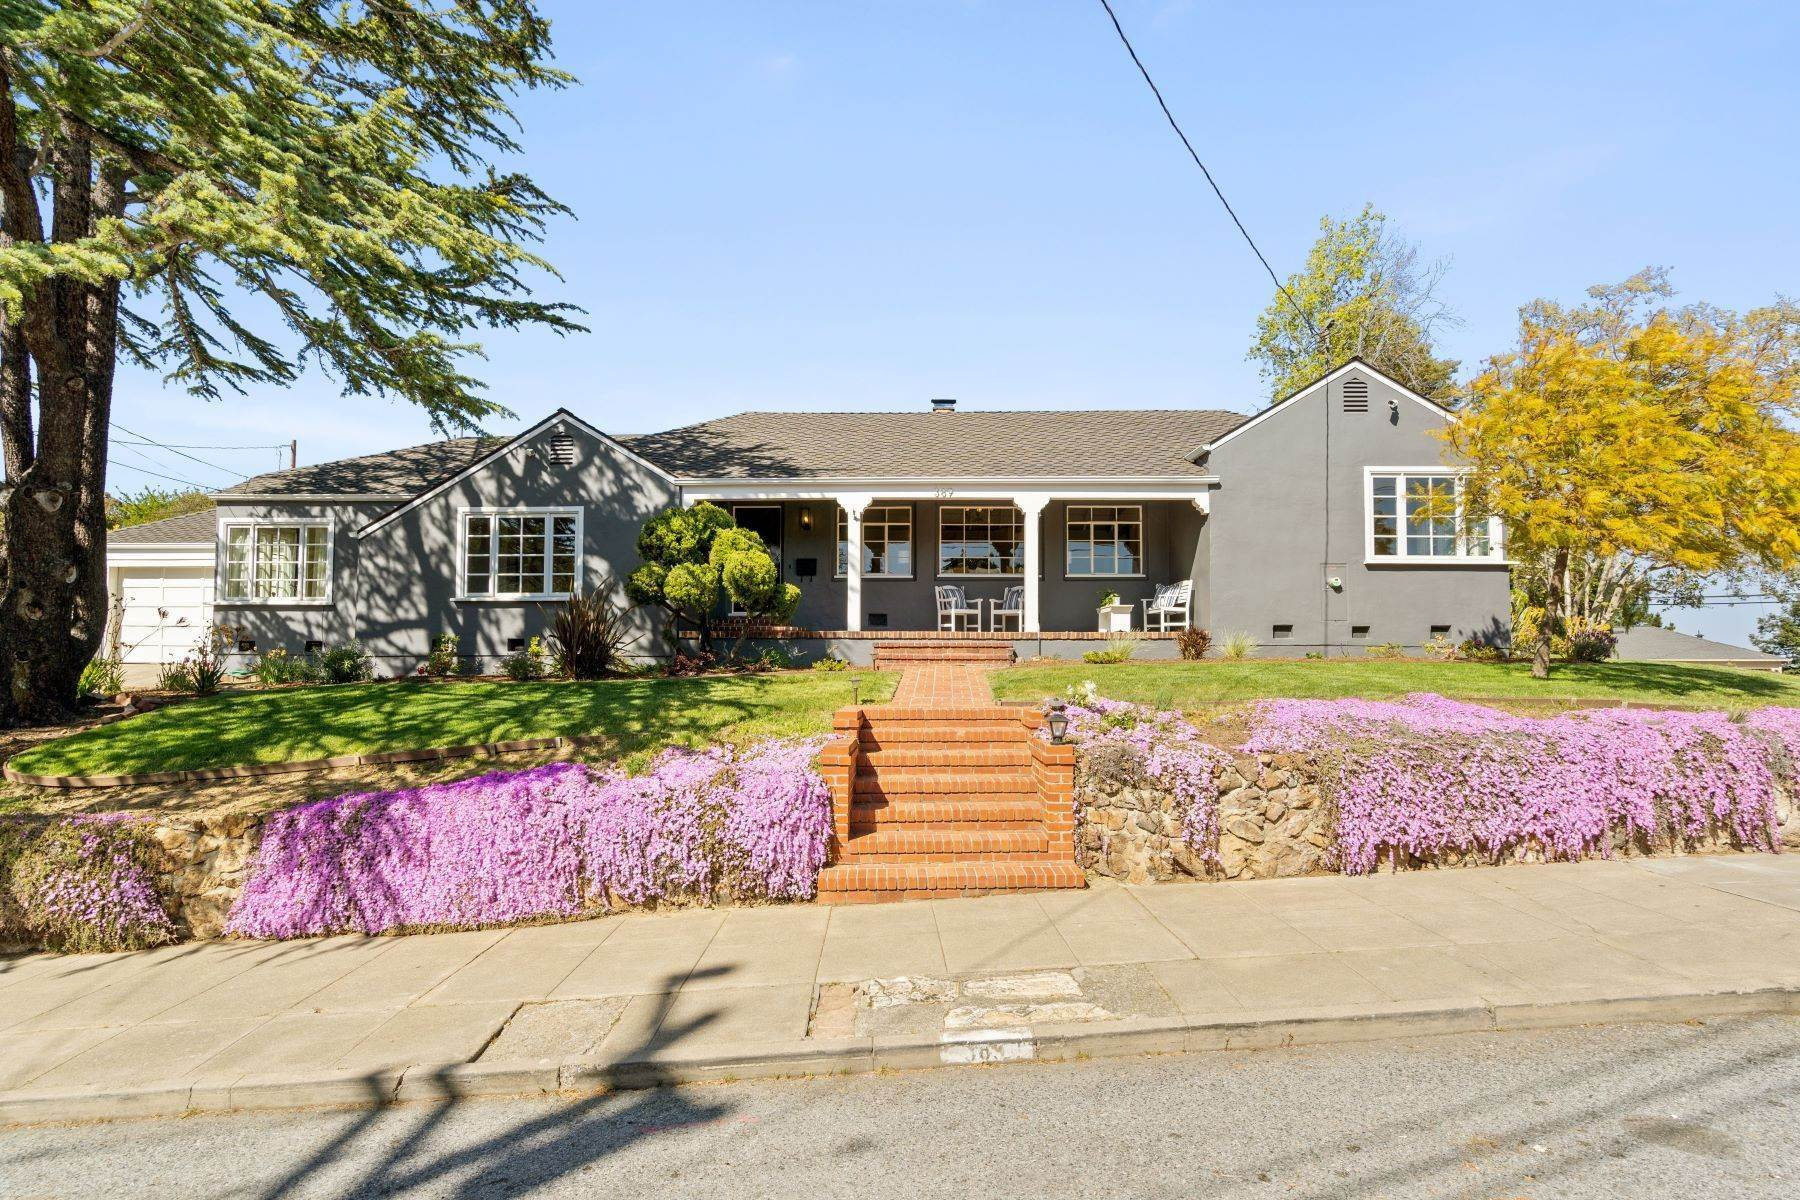 Single Family Homes for Sale at Magnificent San Carlos Home 389 Glenwood Street San Carlos, California 94070 United States